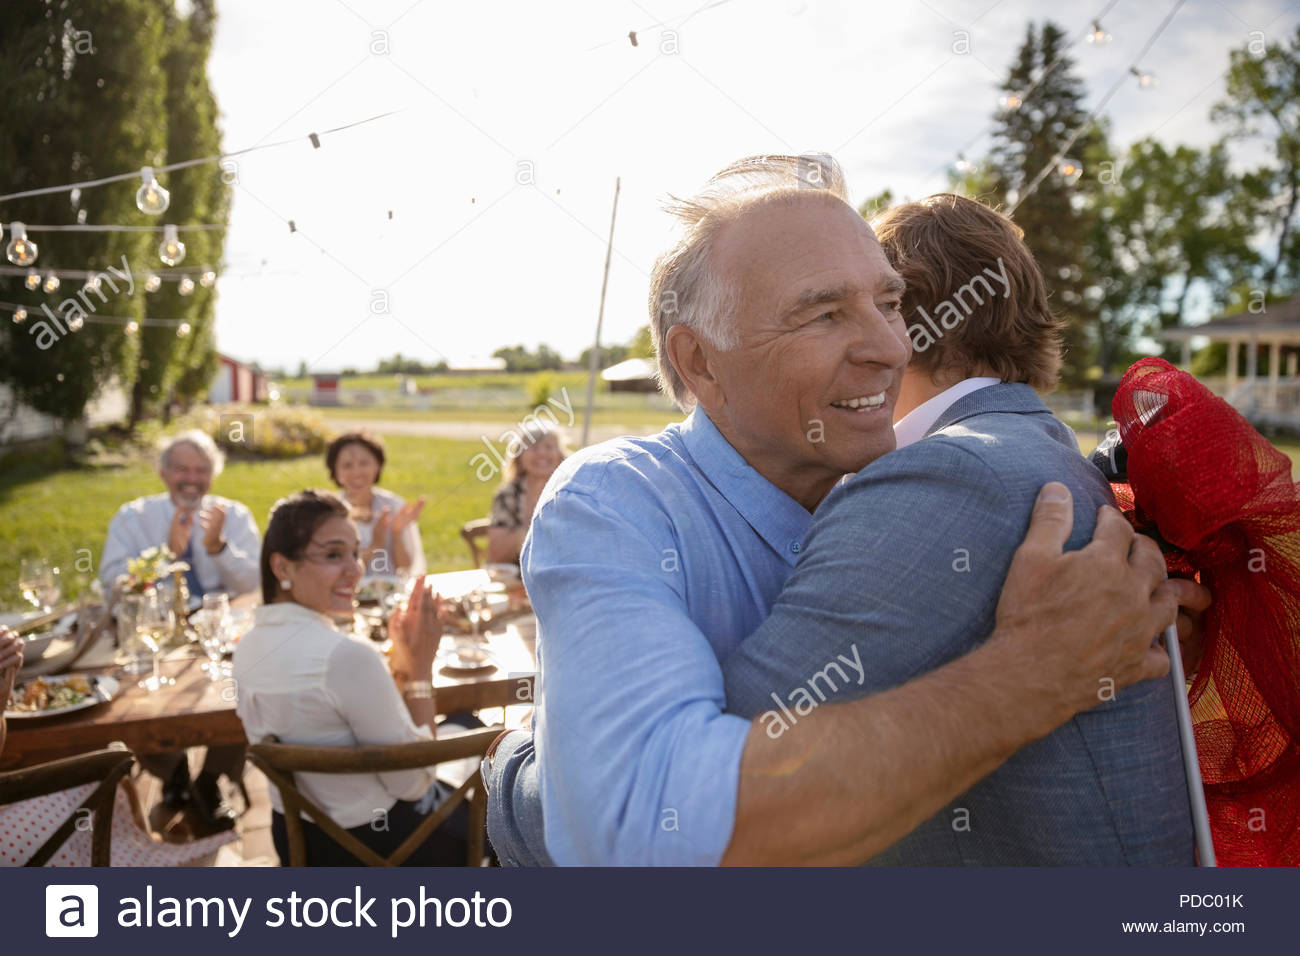 Grateful father hugging son at retirement party in rural garden with friends - Stock Image